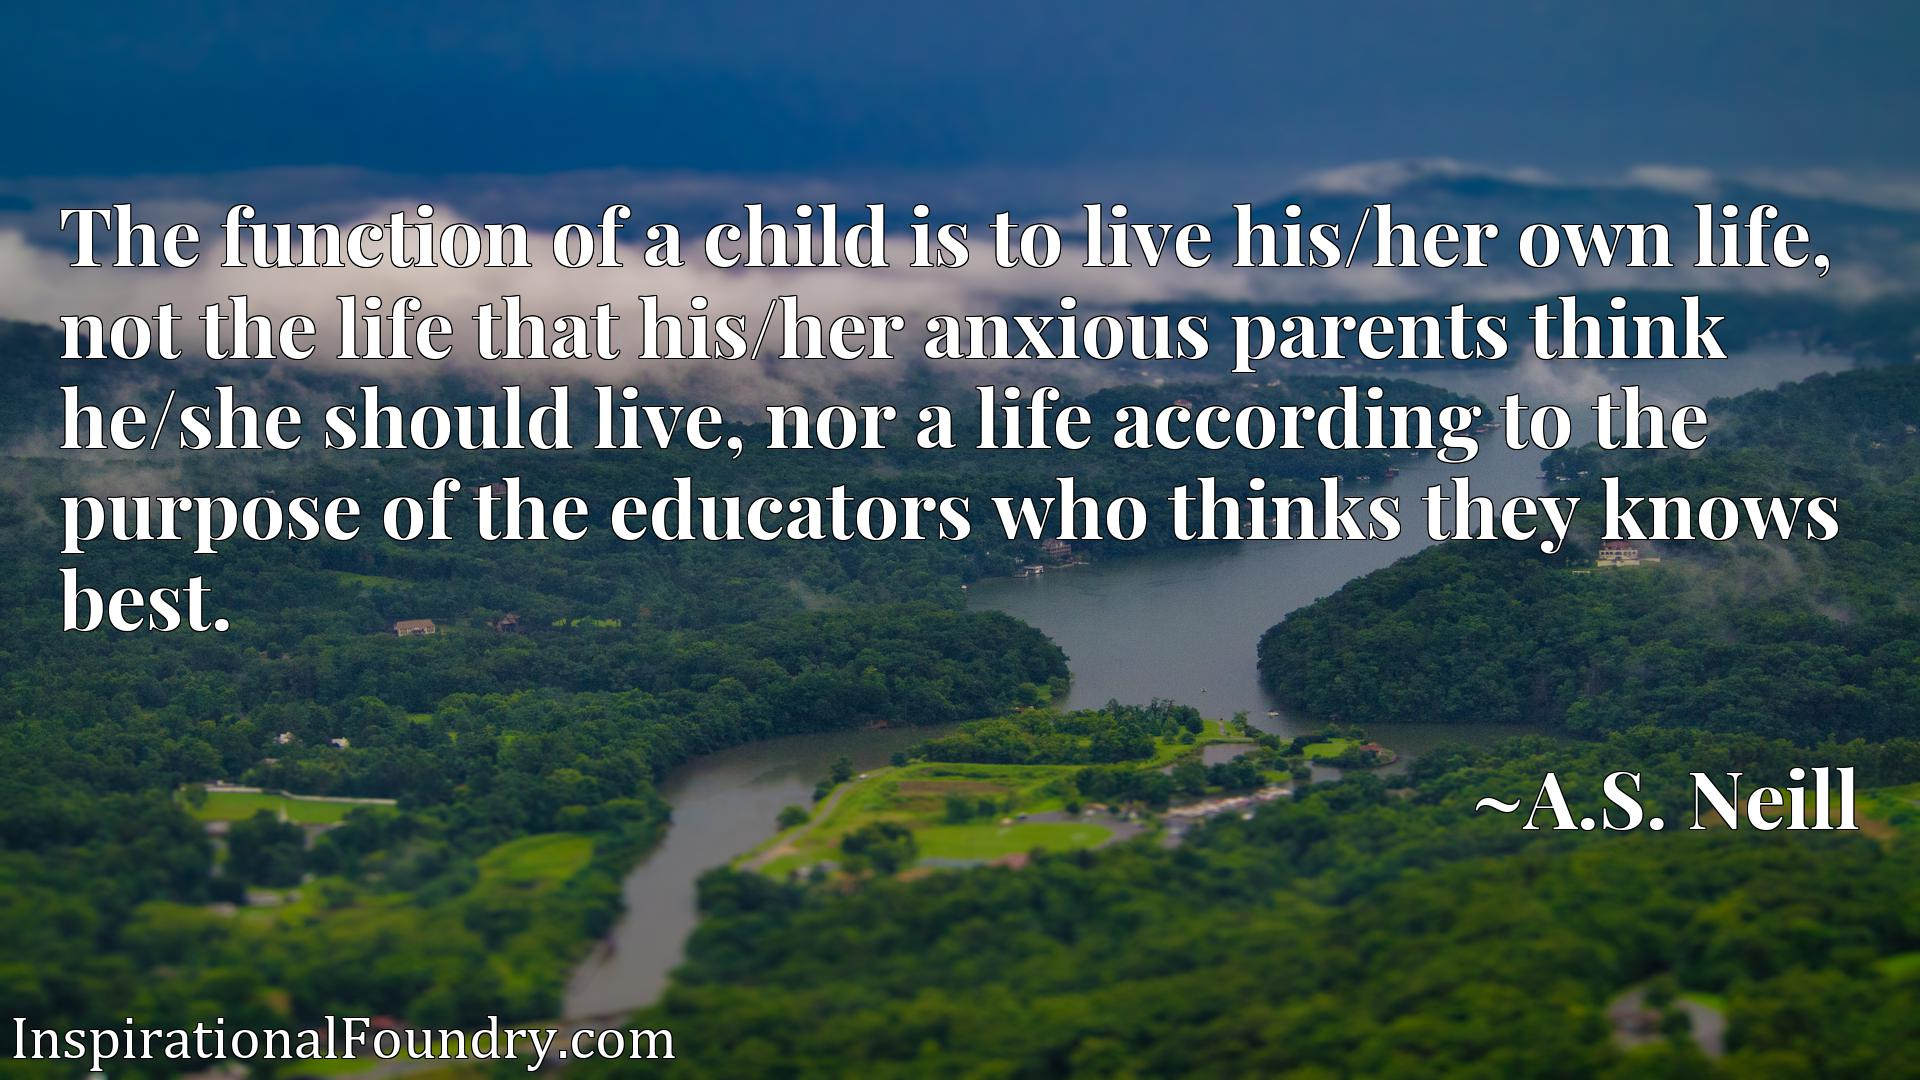 The function of a child is to live his/her own life, not the life that his/her anxious parents think he/she should live, nor a life according to the purpose of the educators who thinks they knows best.